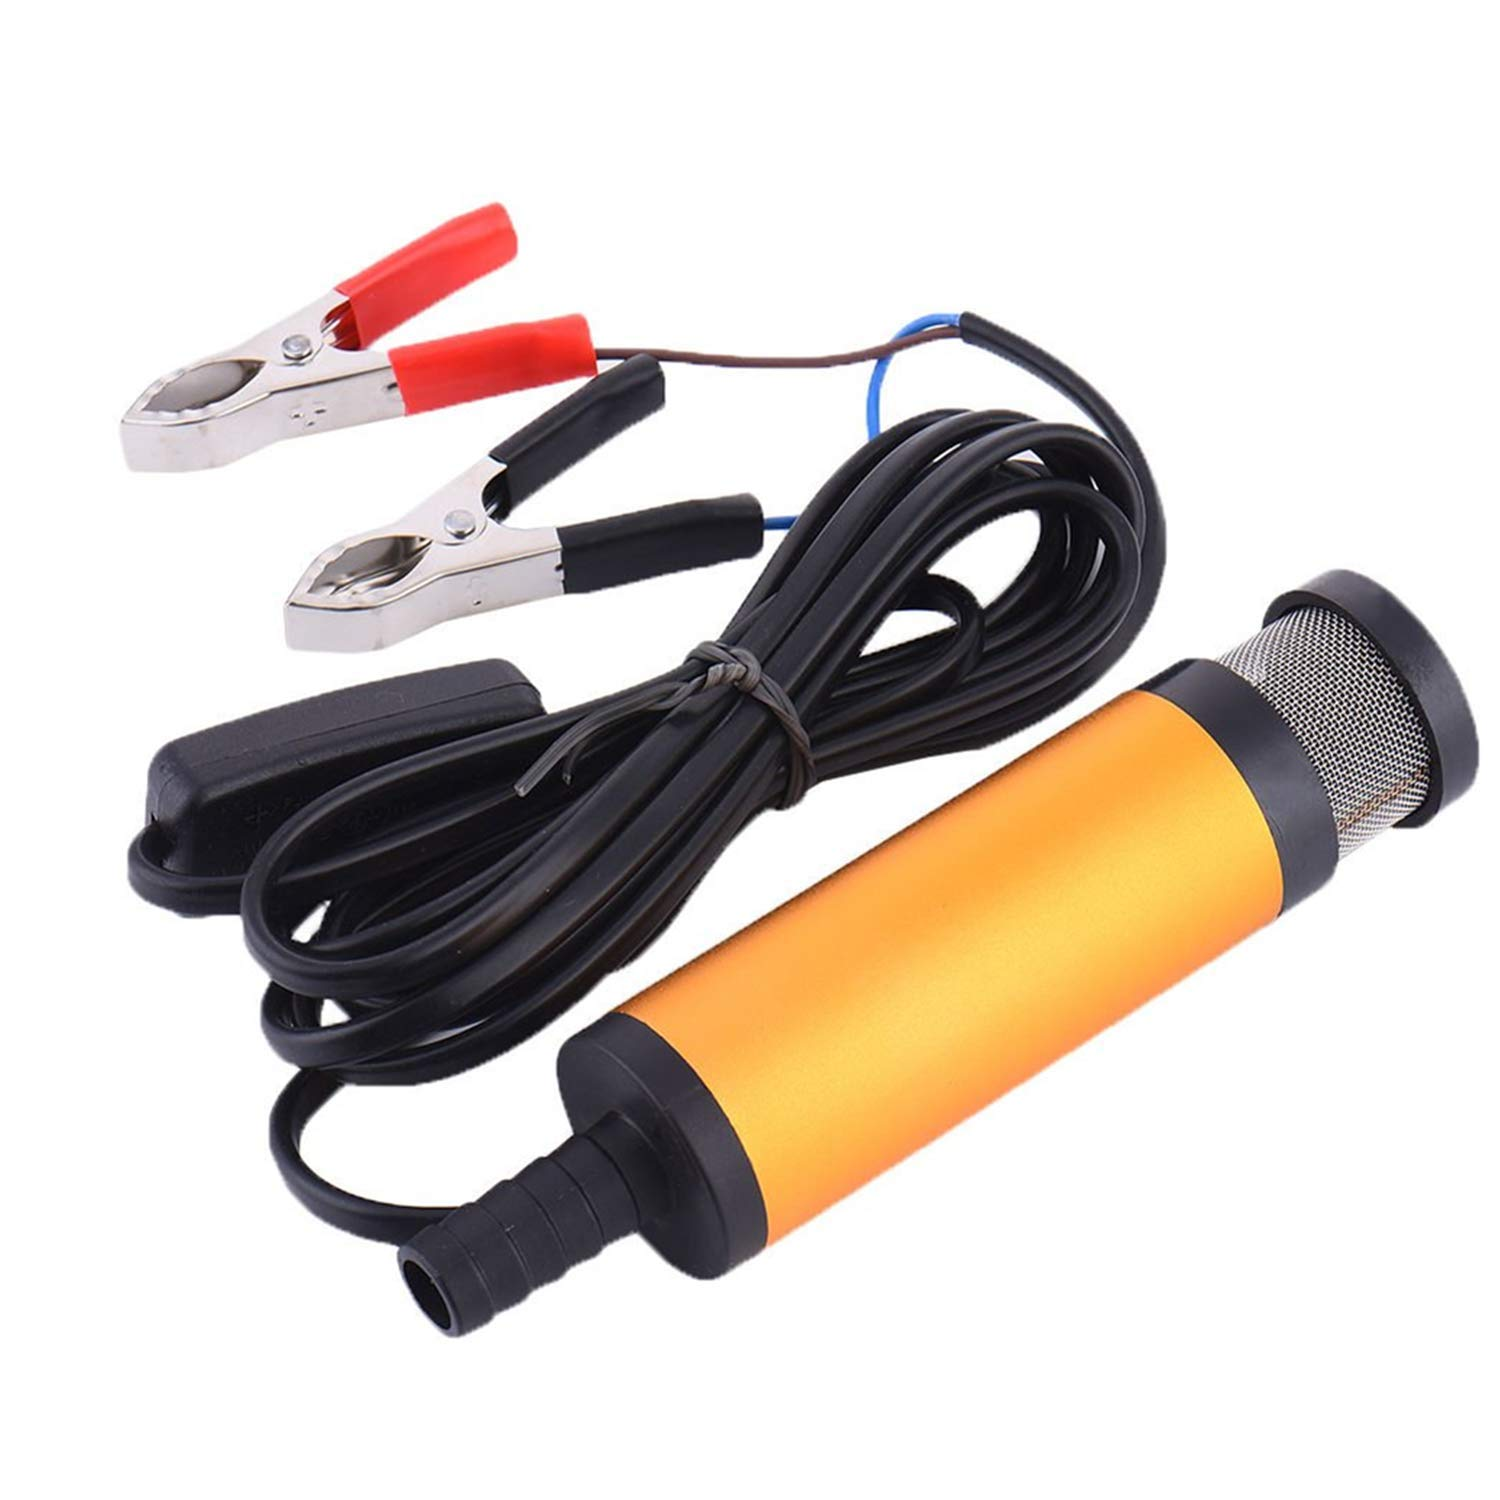 Water Oil Diesel Fuel Pump,Submersible Pump,12V 38MM Port Stainless Steel Fuel Pump with Clip Detachable Filter for Diesel Car Or Speed Boat